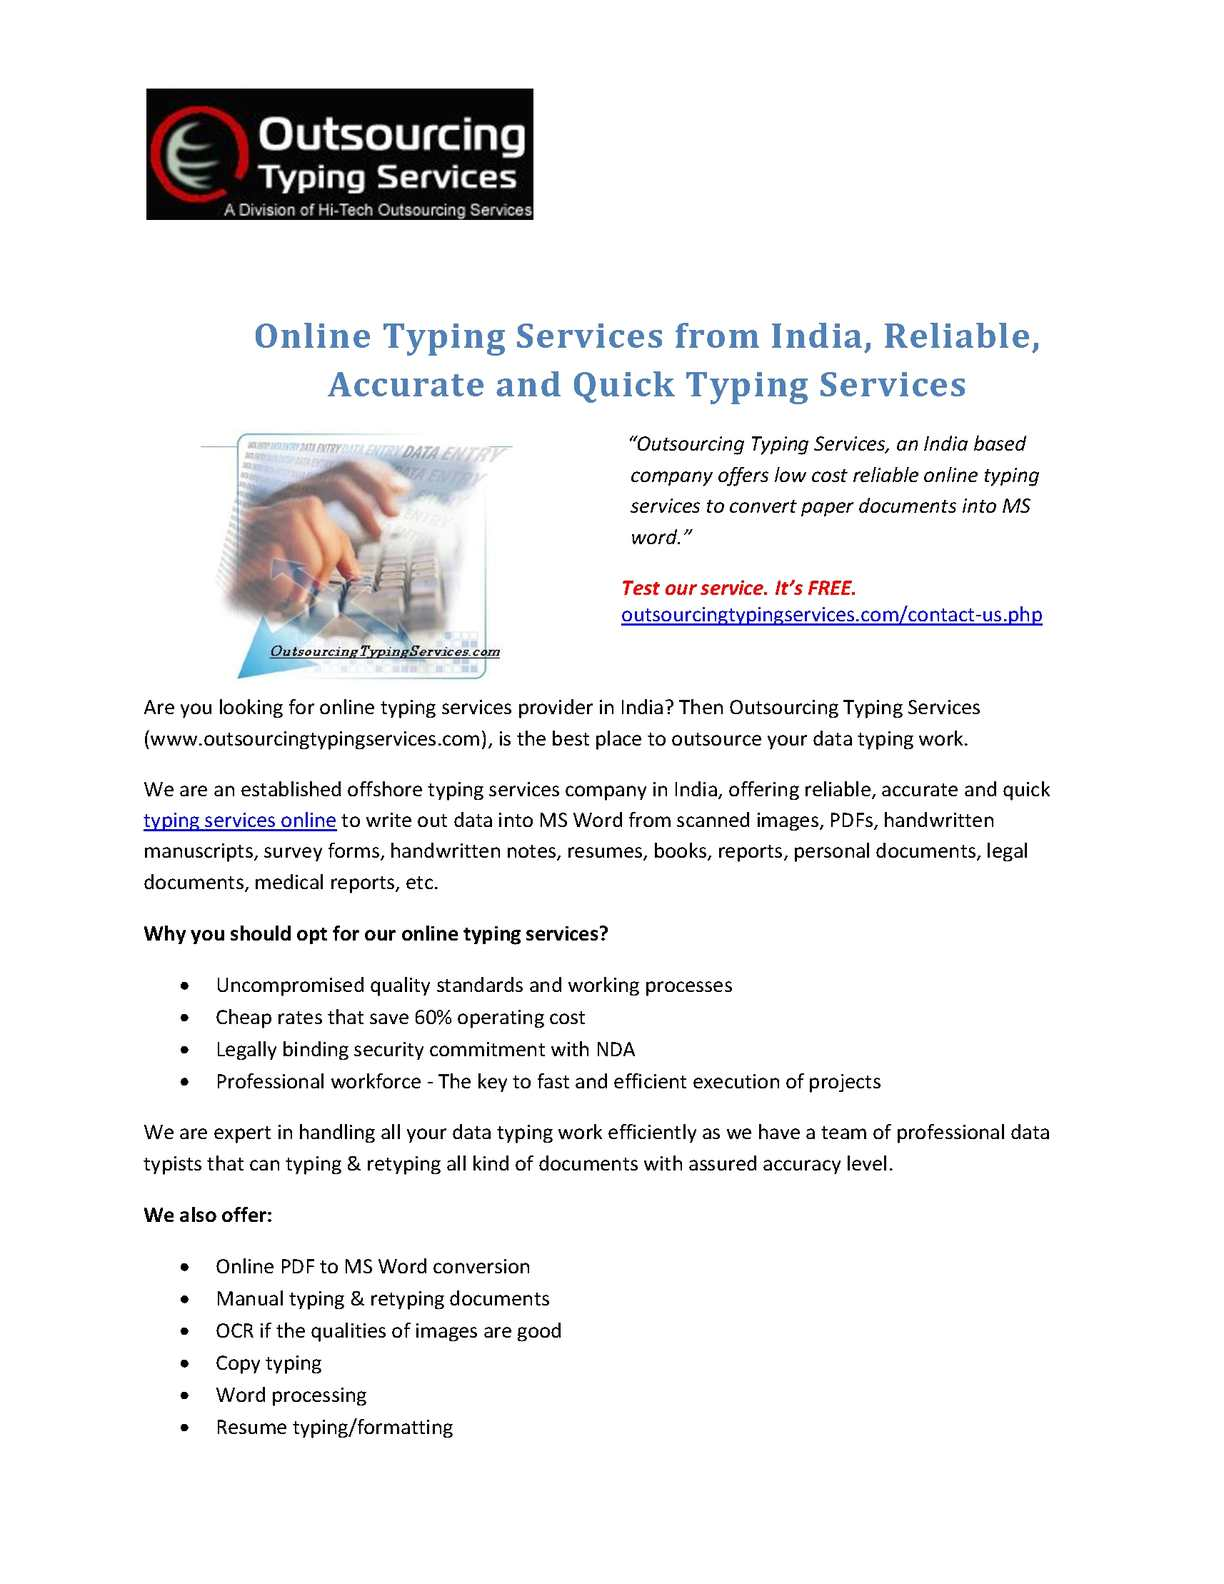 online typing services from india reliable accurate and quick typing services